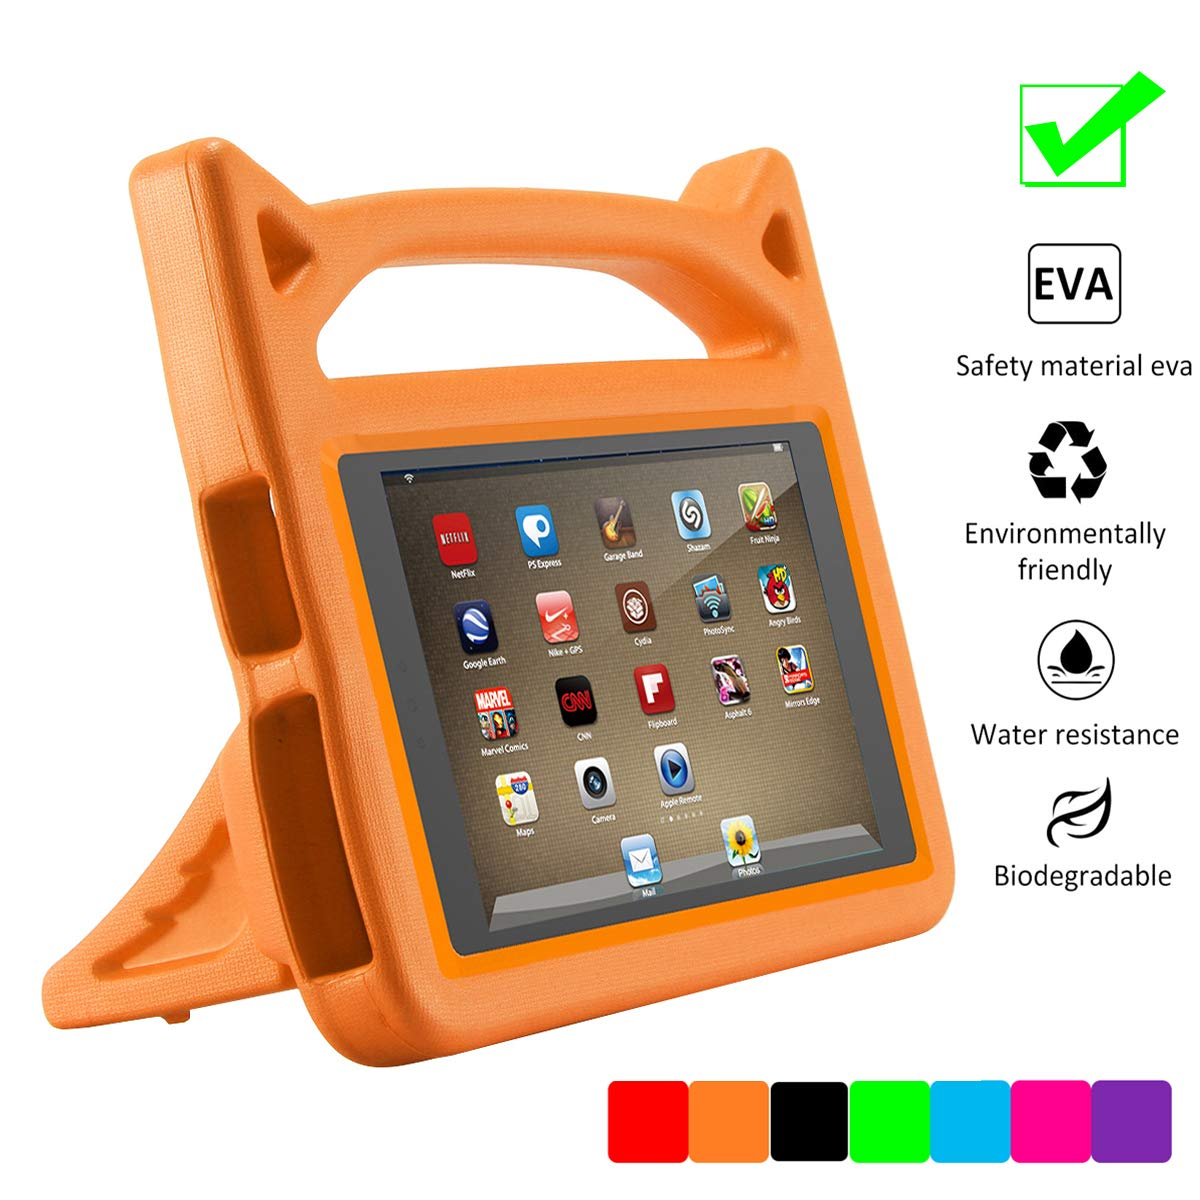 Newest Style Fire HD 8 2017 Case,Fire HD 8 2016 Case,Snow WI Lightweight Kid-Safe Shock-Proof Case for Amazon Fire 8 Tablet (Compatible 6th Gen 2016/7th Gen 2017) (Orange) by SNOW WI